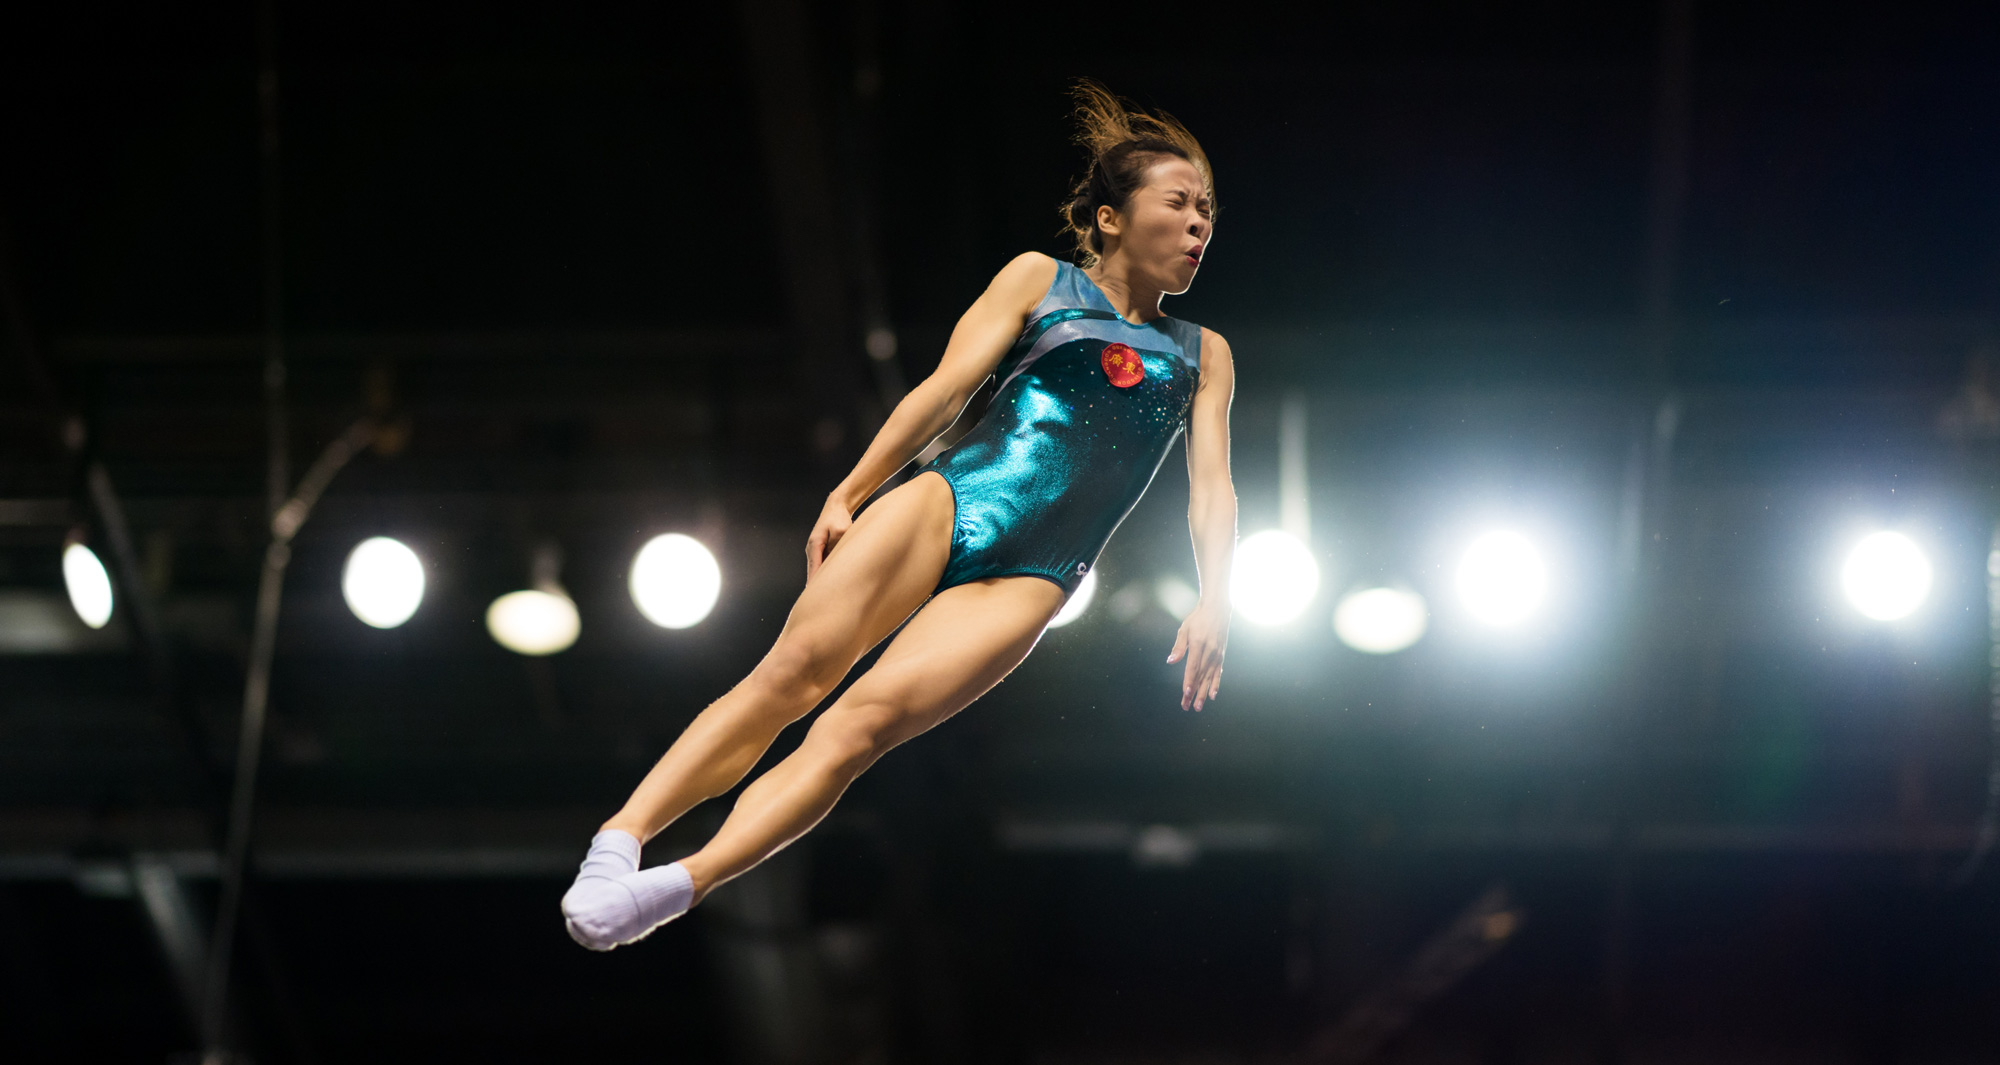 terry-donnelly-sony-alpha-9-gymnast-leaps-in-the-air-with-her-eyes-closed